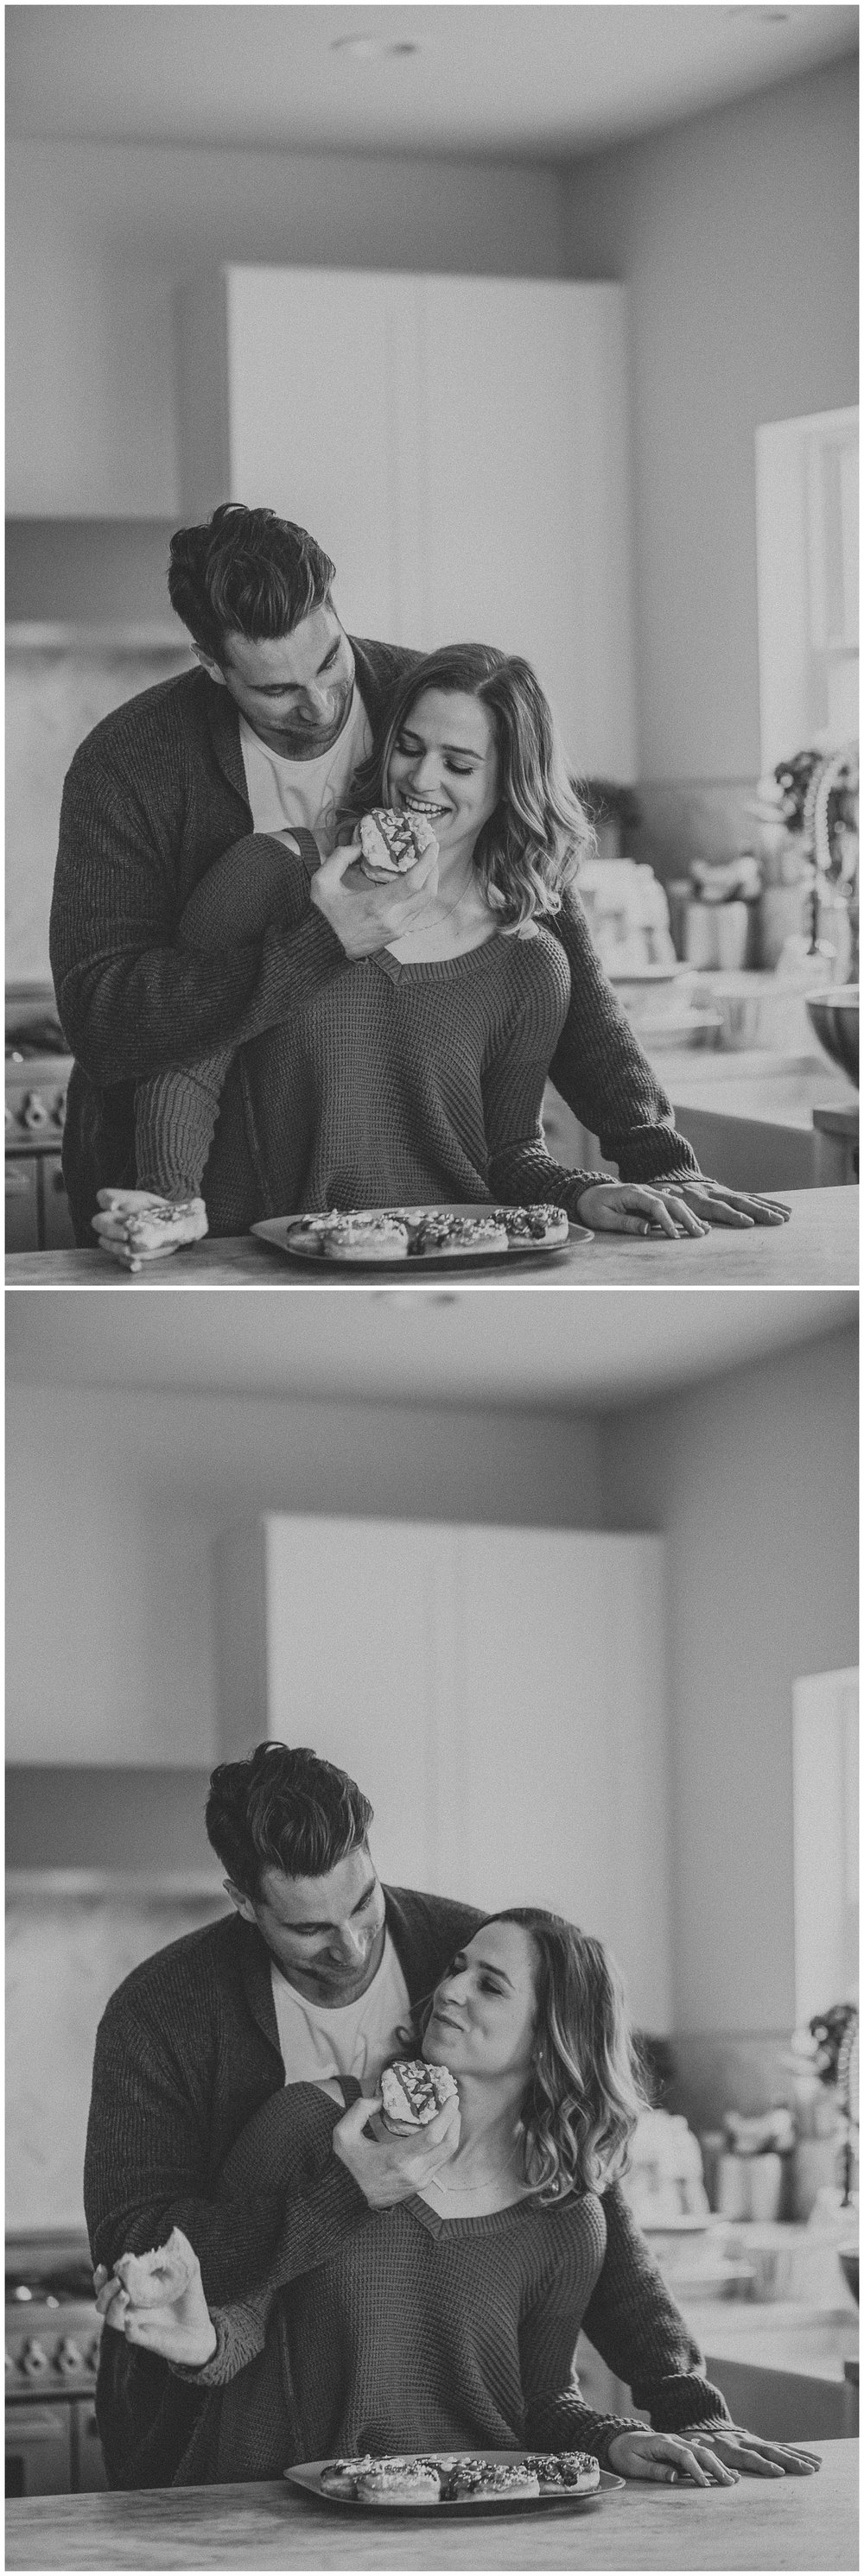 Warm and Cozy Winter Lifestyle In Home Engagement Session_0043.jpg